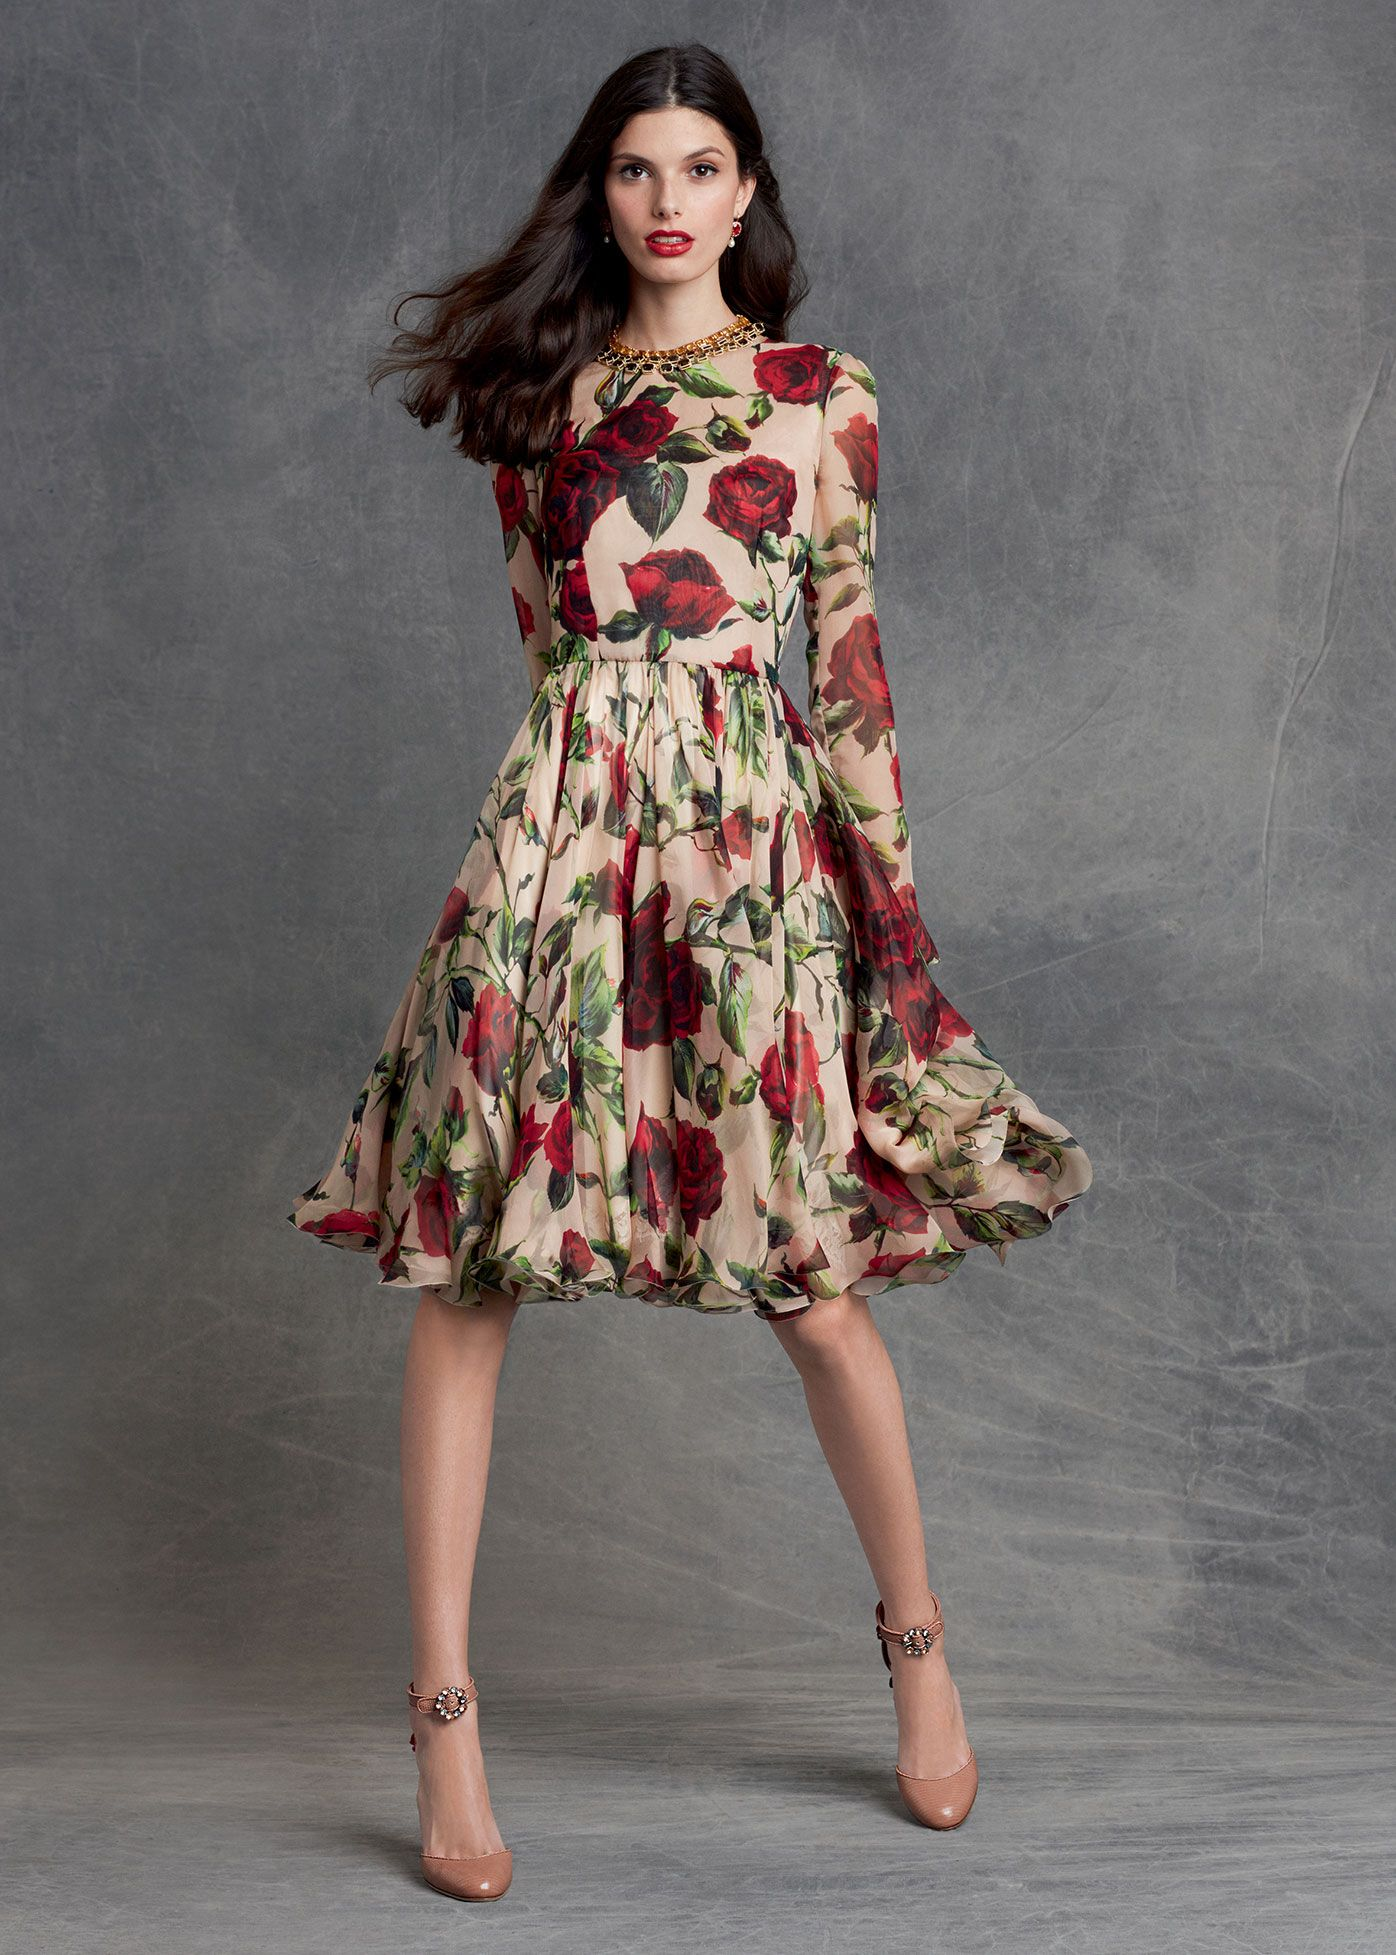 Apricot Color Long Sleeve Dress with Rose Print : Dolce and Gabbana Winter  Collectiom ~